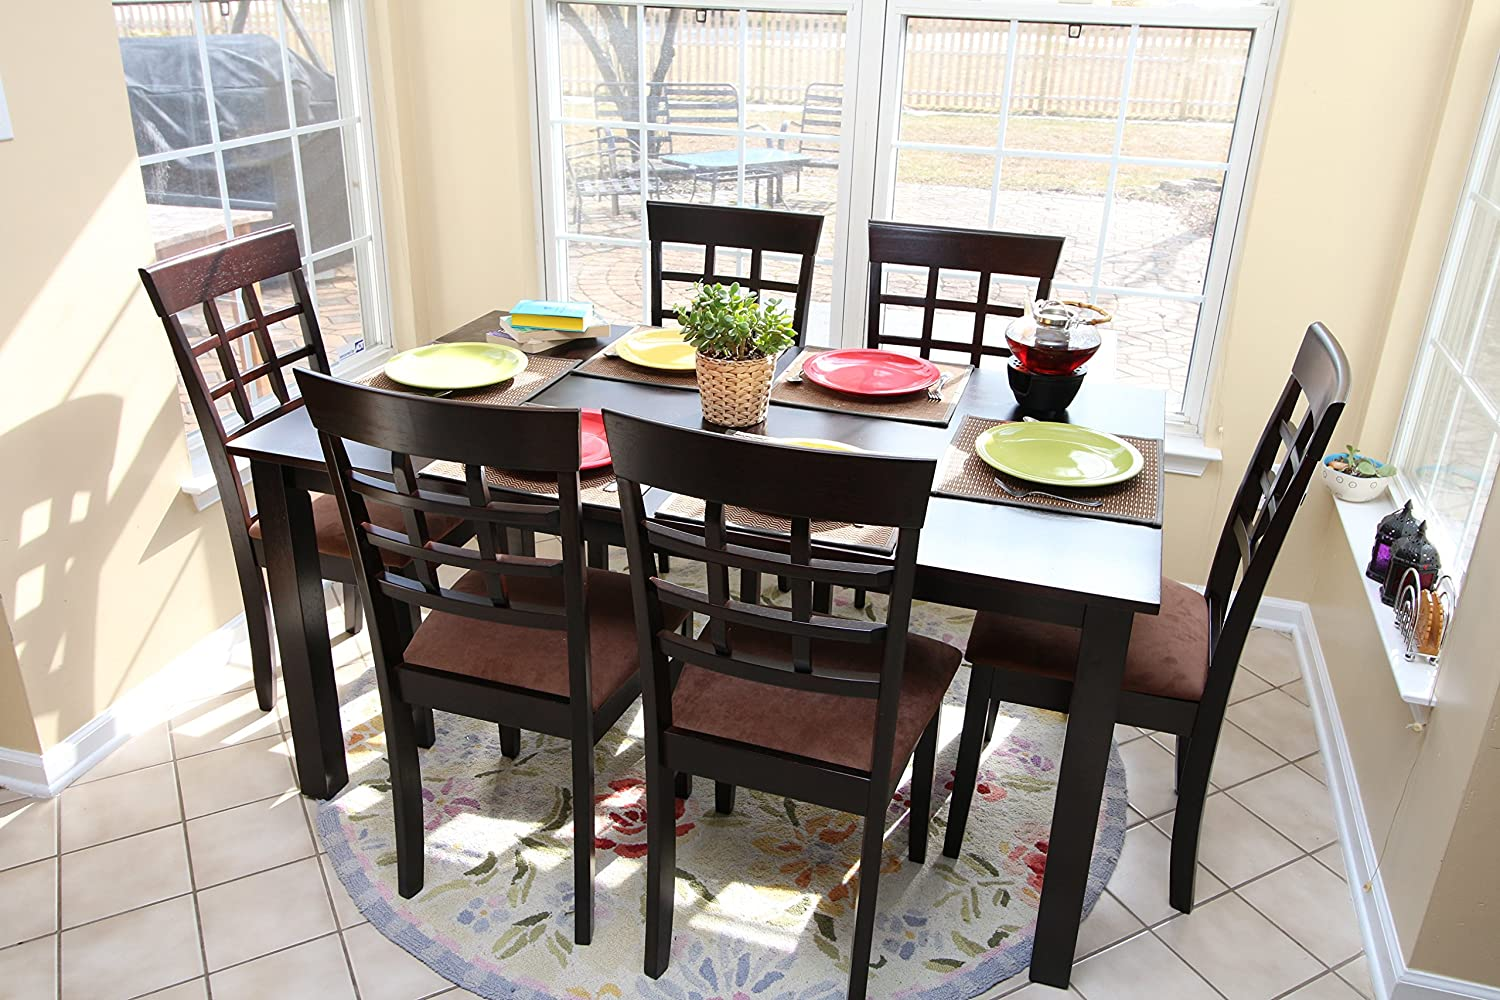 Amazoncom  Pc Espresso Brown  Person Table And Chairs Brown - Espresso kitchen table set